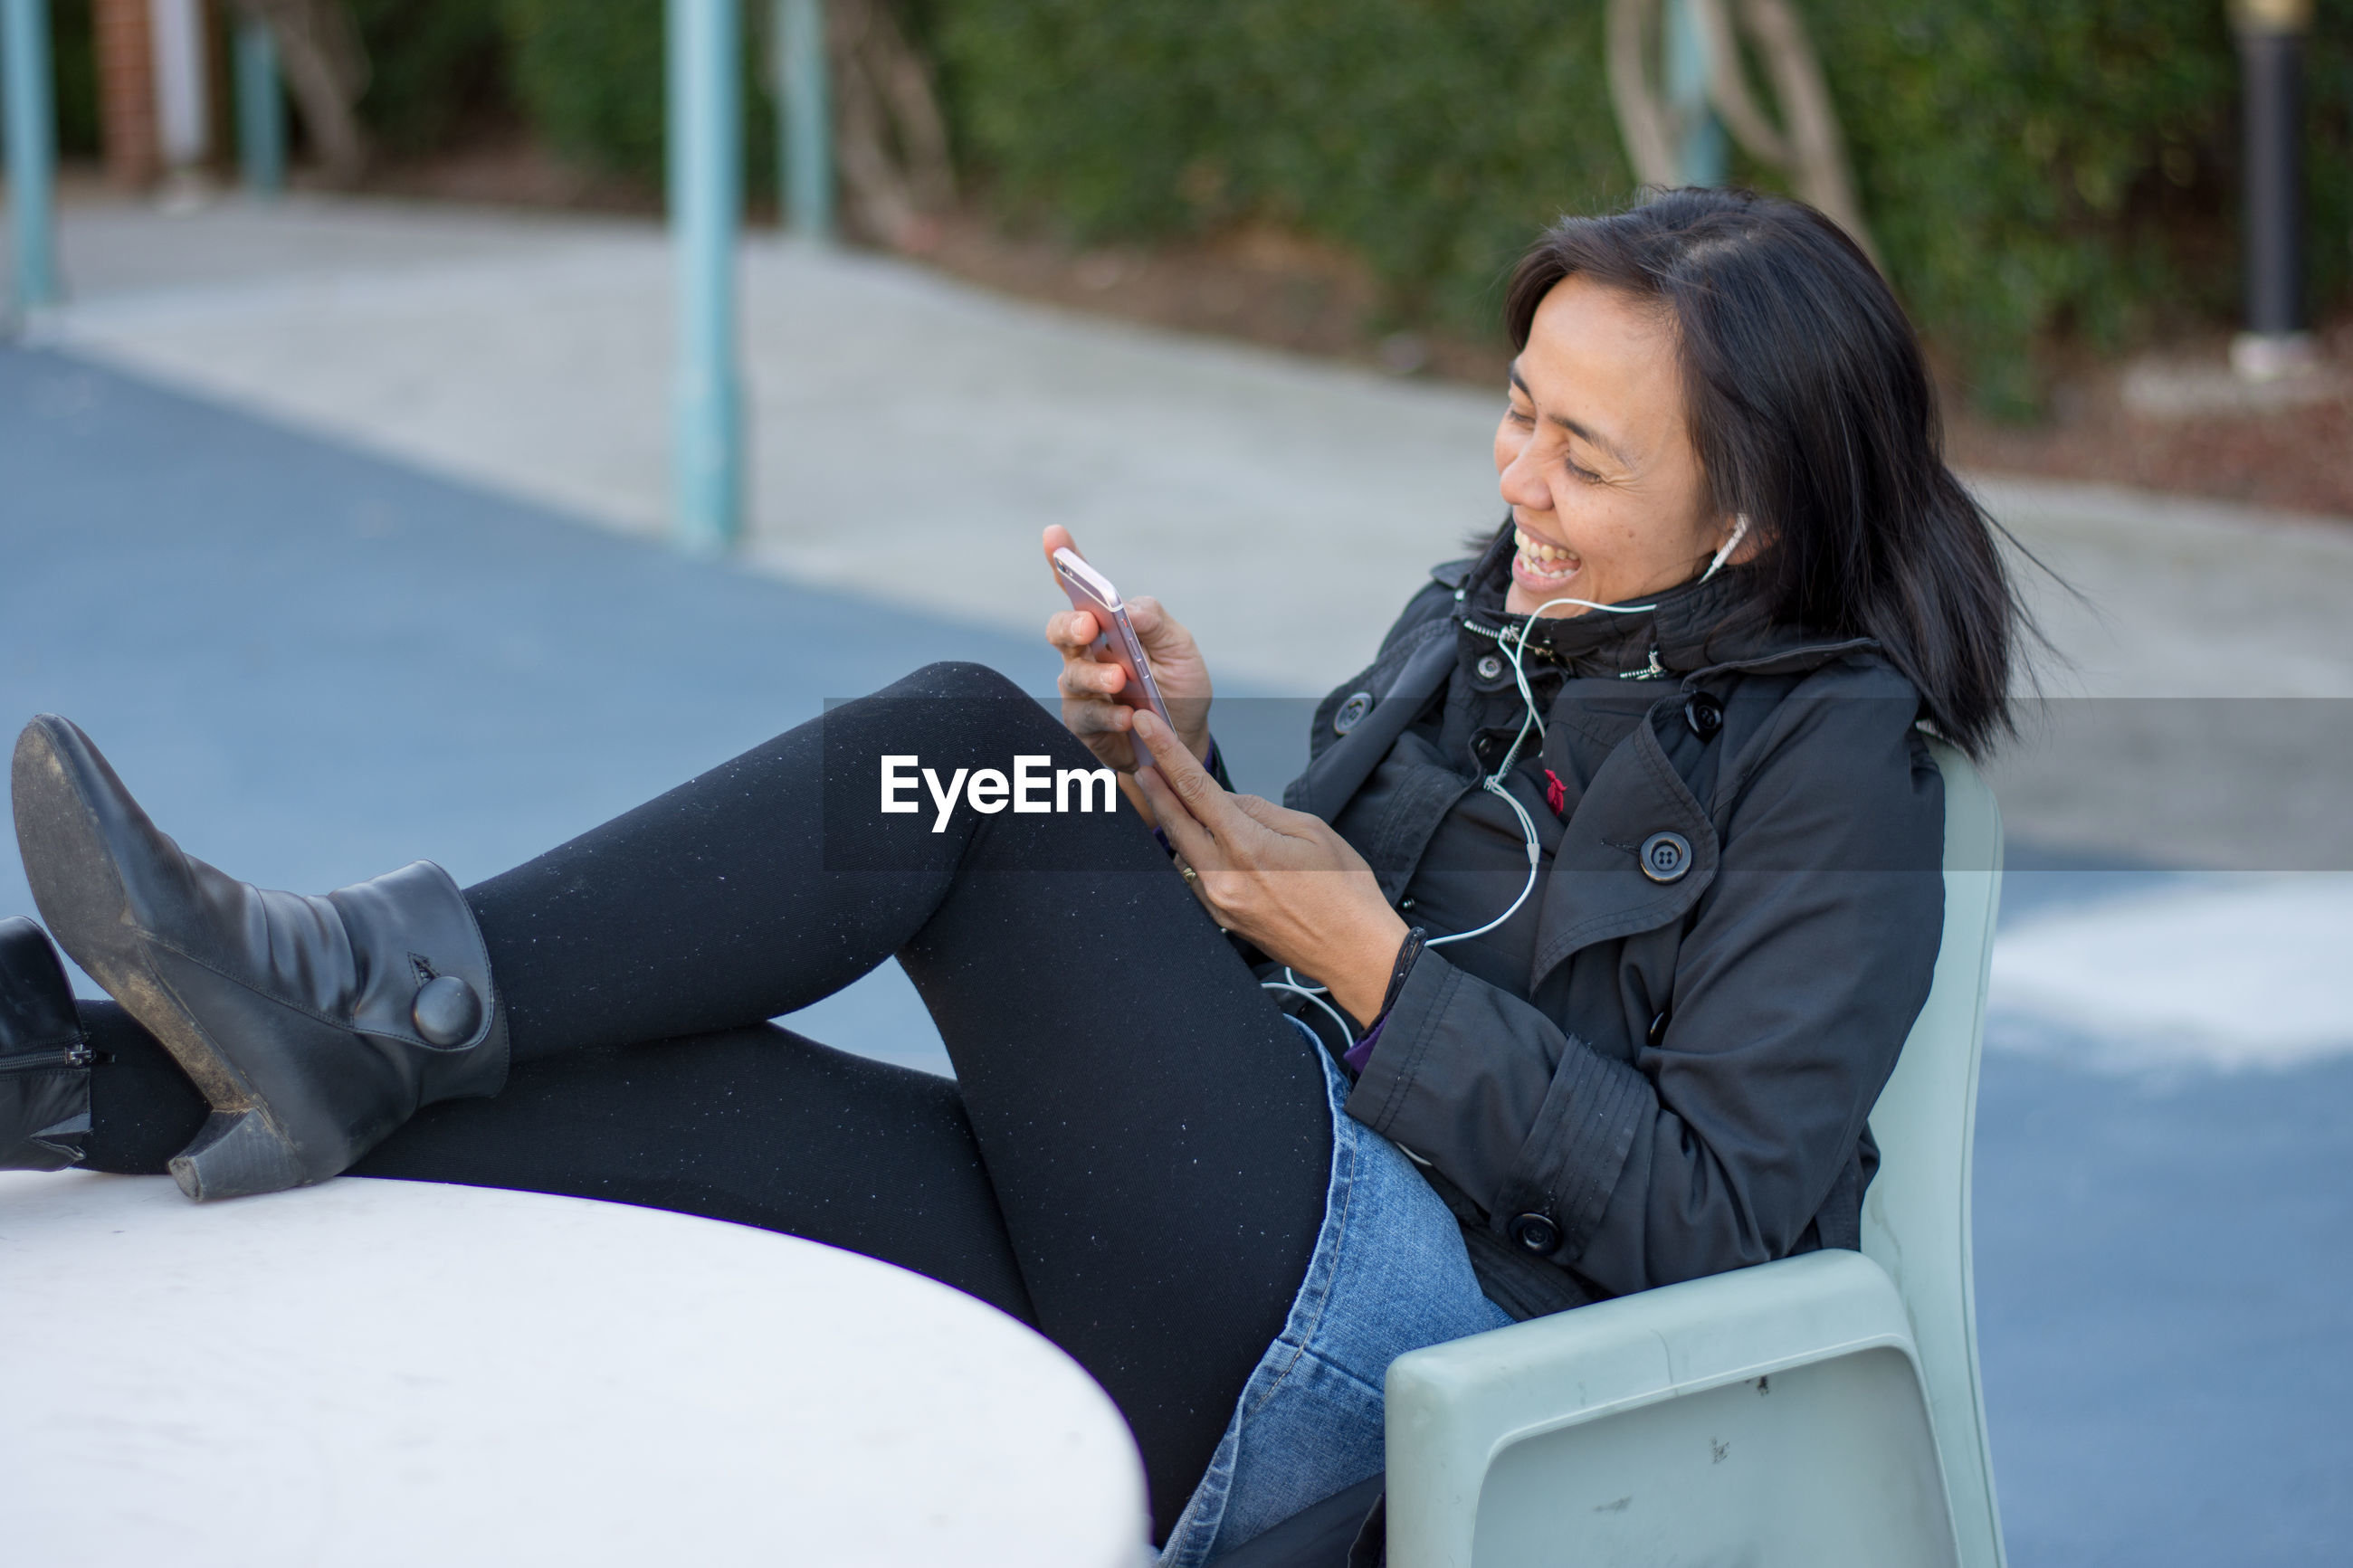 Mid adult woman using mobile phone while sitting on chair